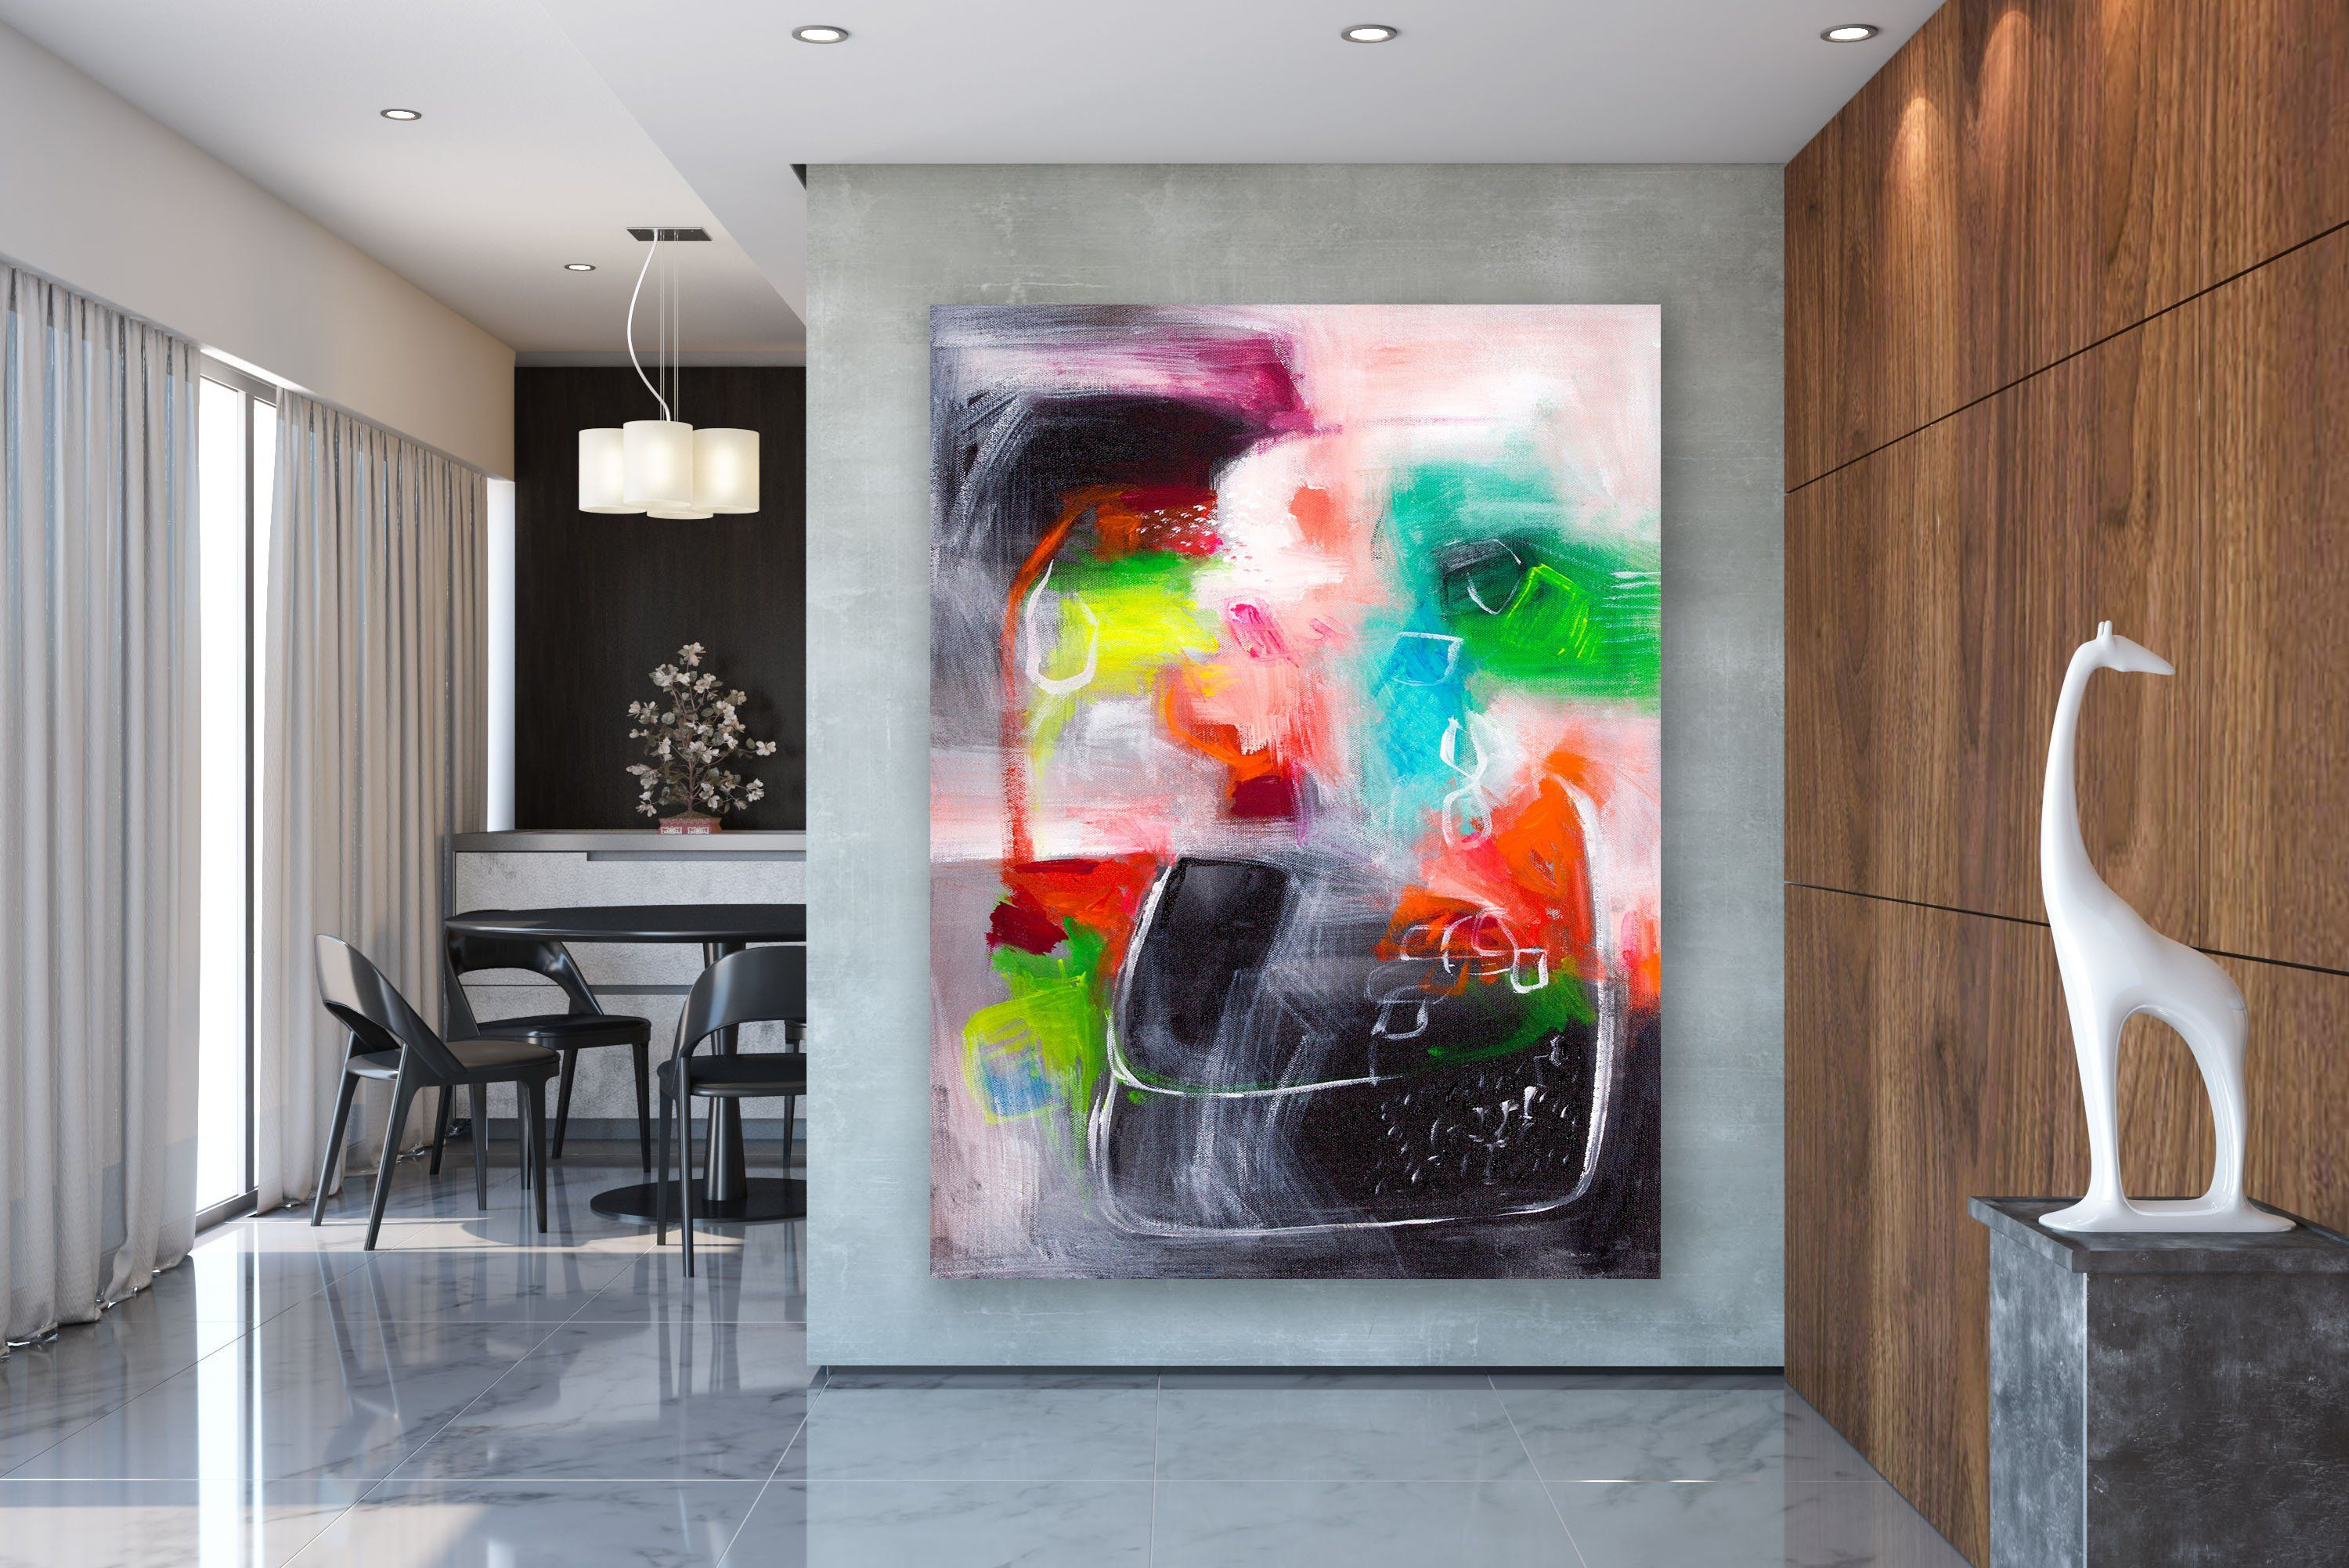 Large Modern Wall Art Painting Large Abstract Wall Art Texture Art Painting Abstract Originals Bath Large Abstract Wall Art Abstract Wall Art Wall Art Painting